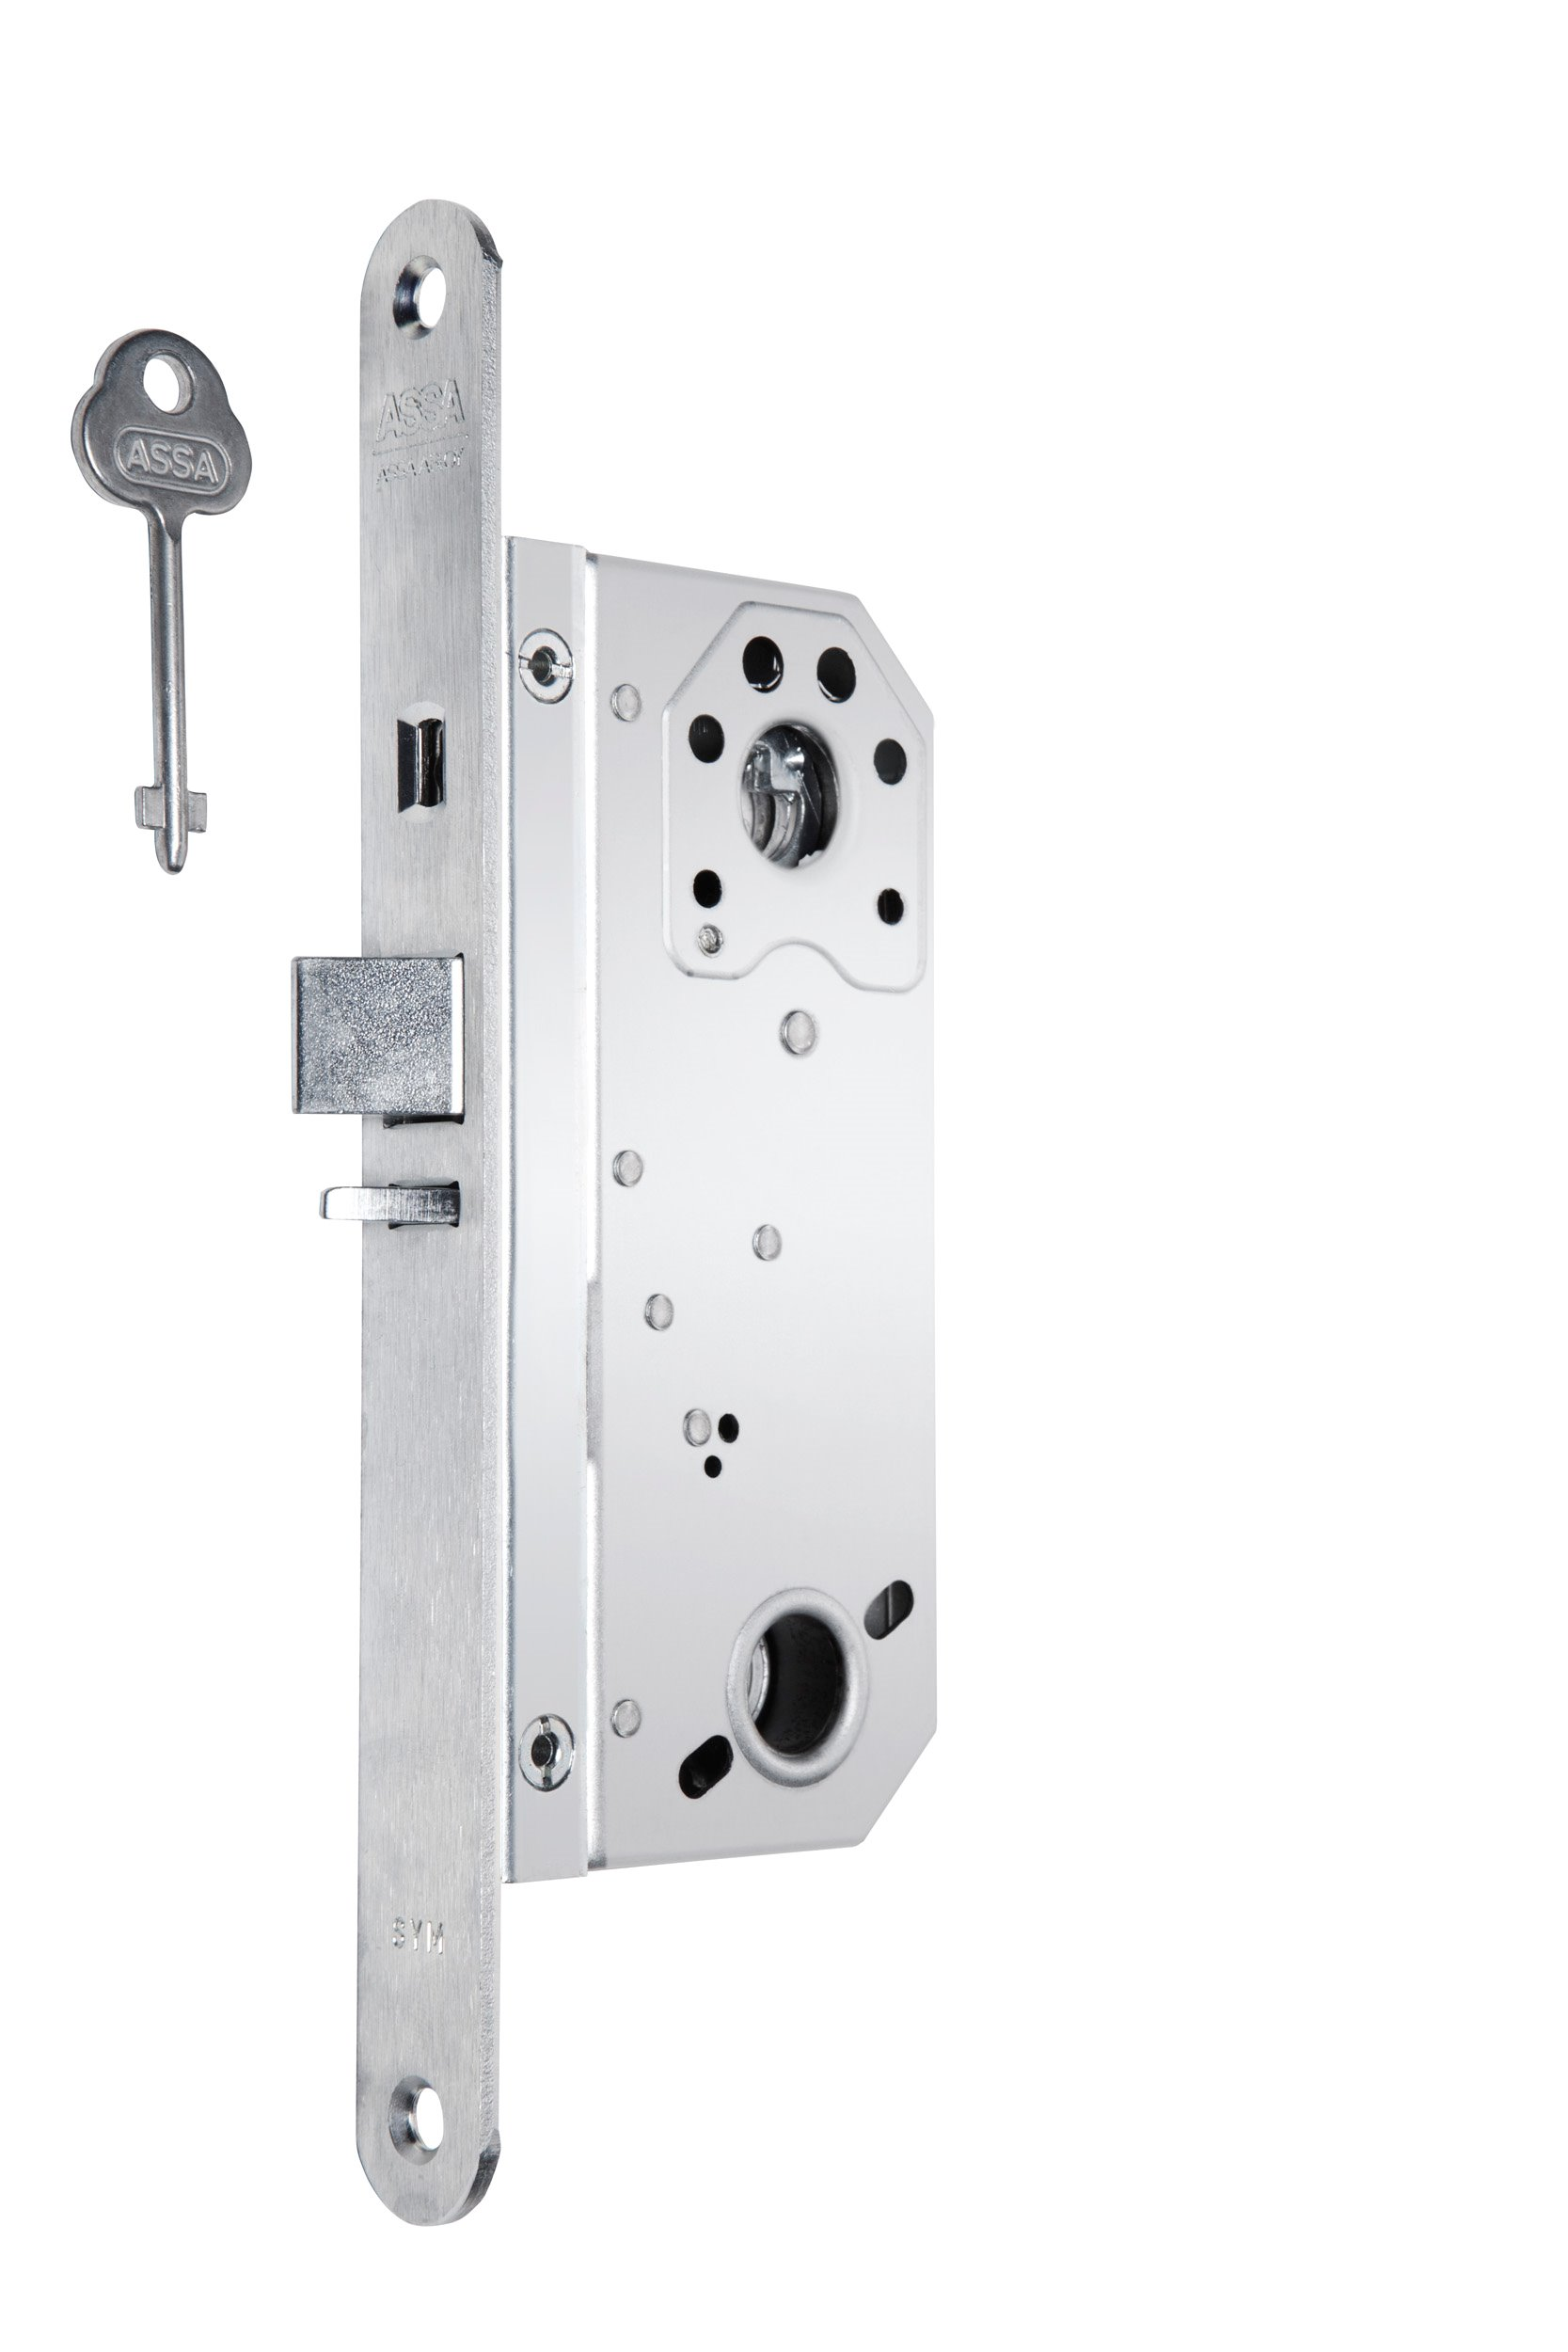 locks for narrow security lock bedroom en catalogue cases products profile finnish abloycom abloy scandinavian oy doors range product and mechanical